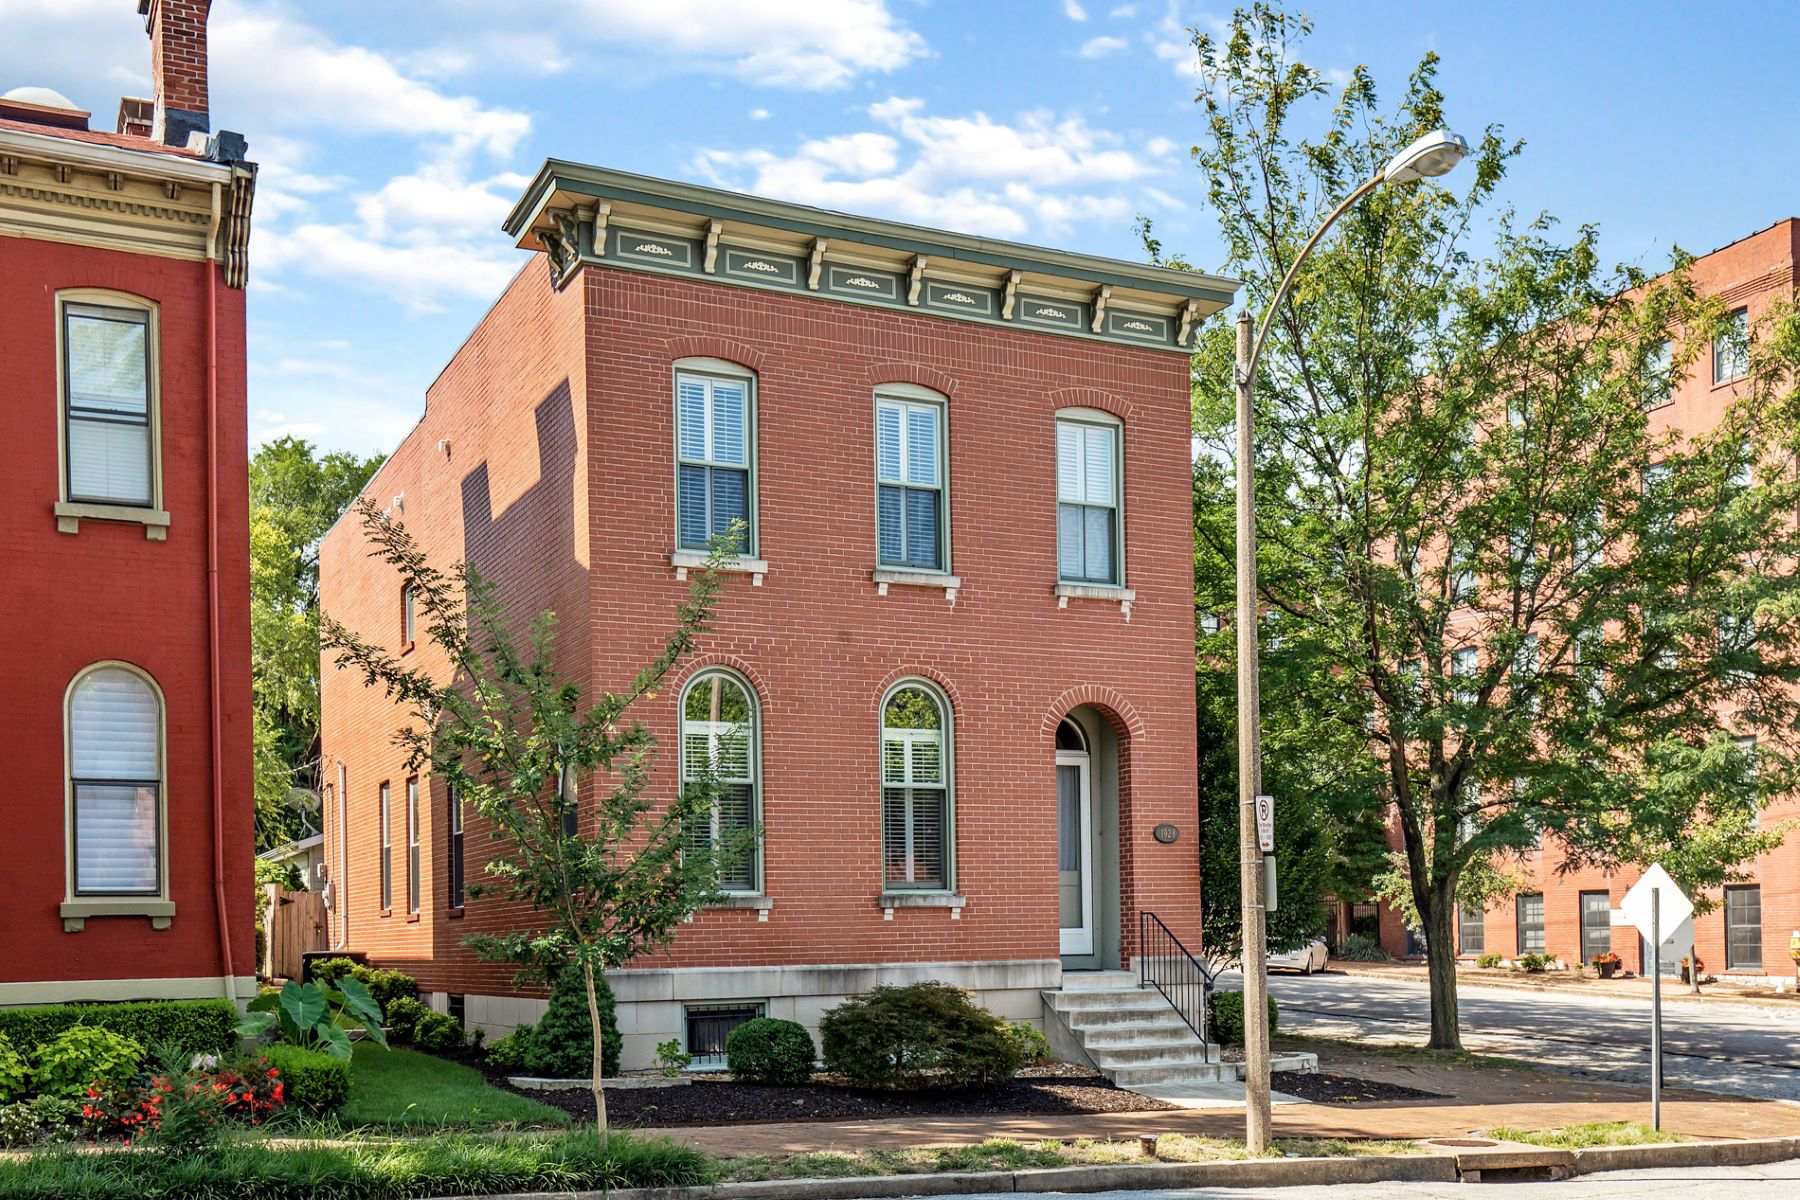 Single Family Home for Sale at Lasalle Street, St. Louis, MO 63104 1928 Lasalle Street St. Louis, Missouri 63104 United States